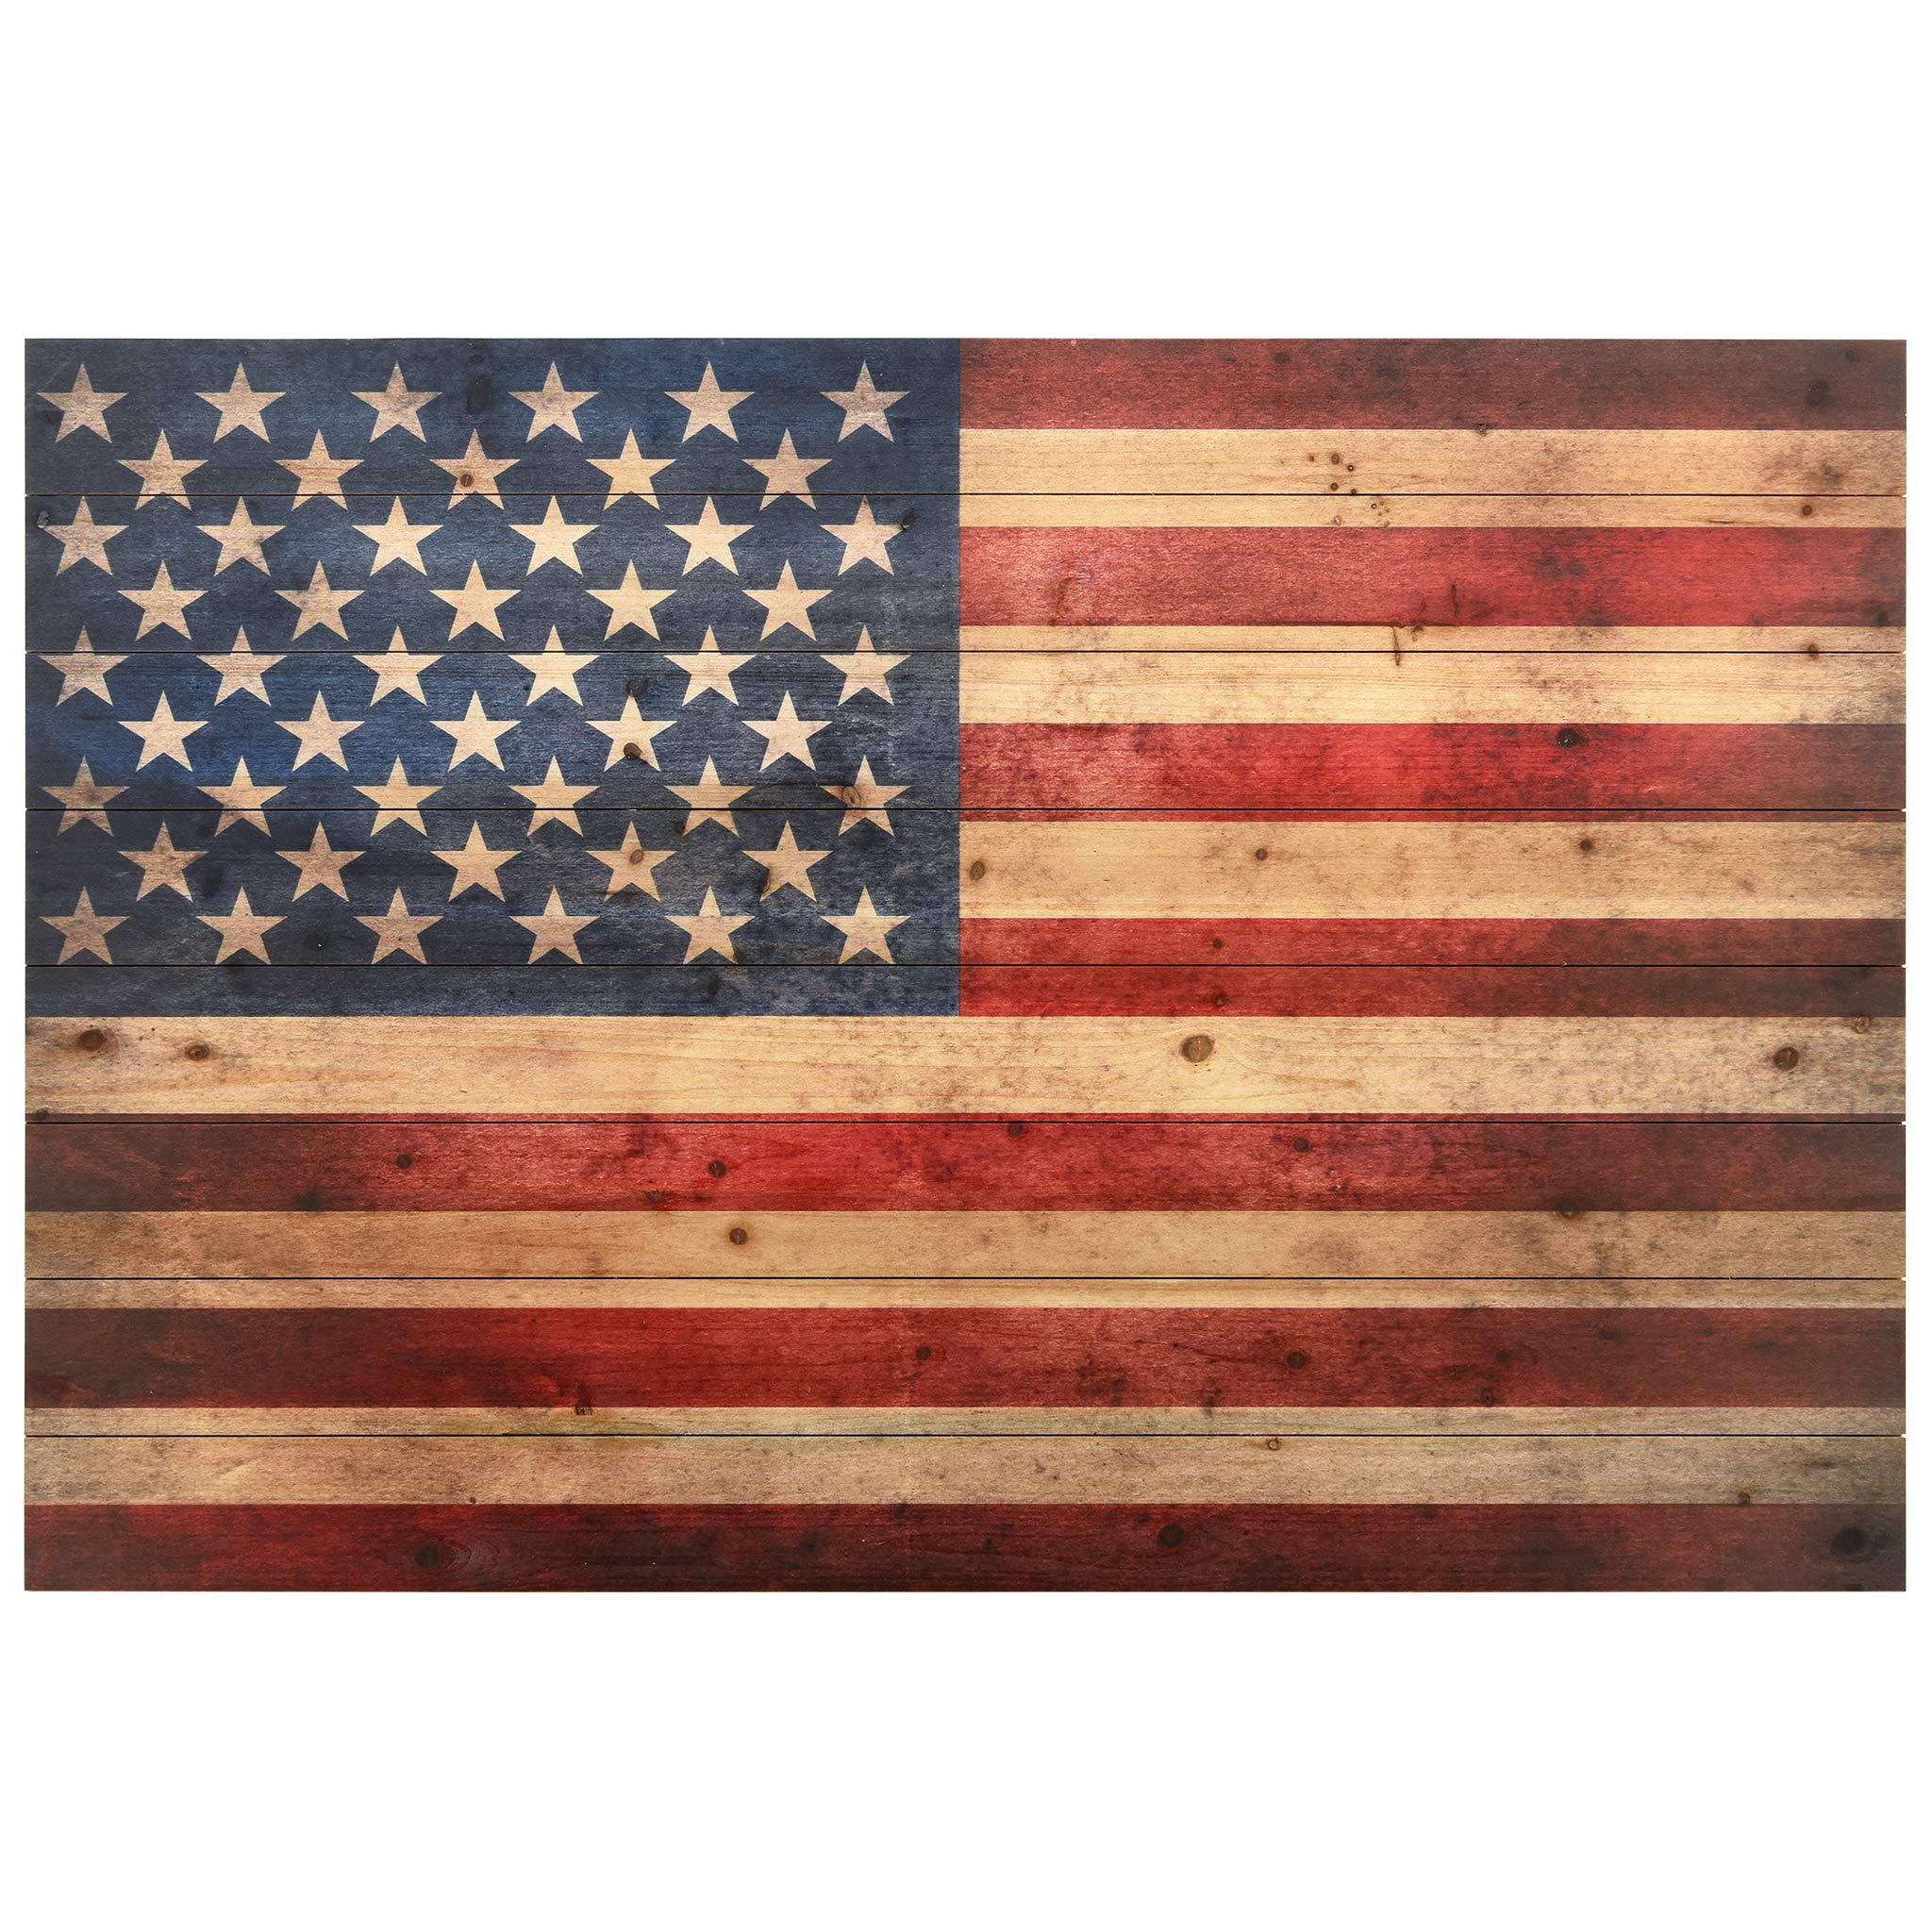 Empire Art Direct American Flag Digital Print on Solid Wood Wall Art 30'' x 45'' x 1.5'' Ready to Hang